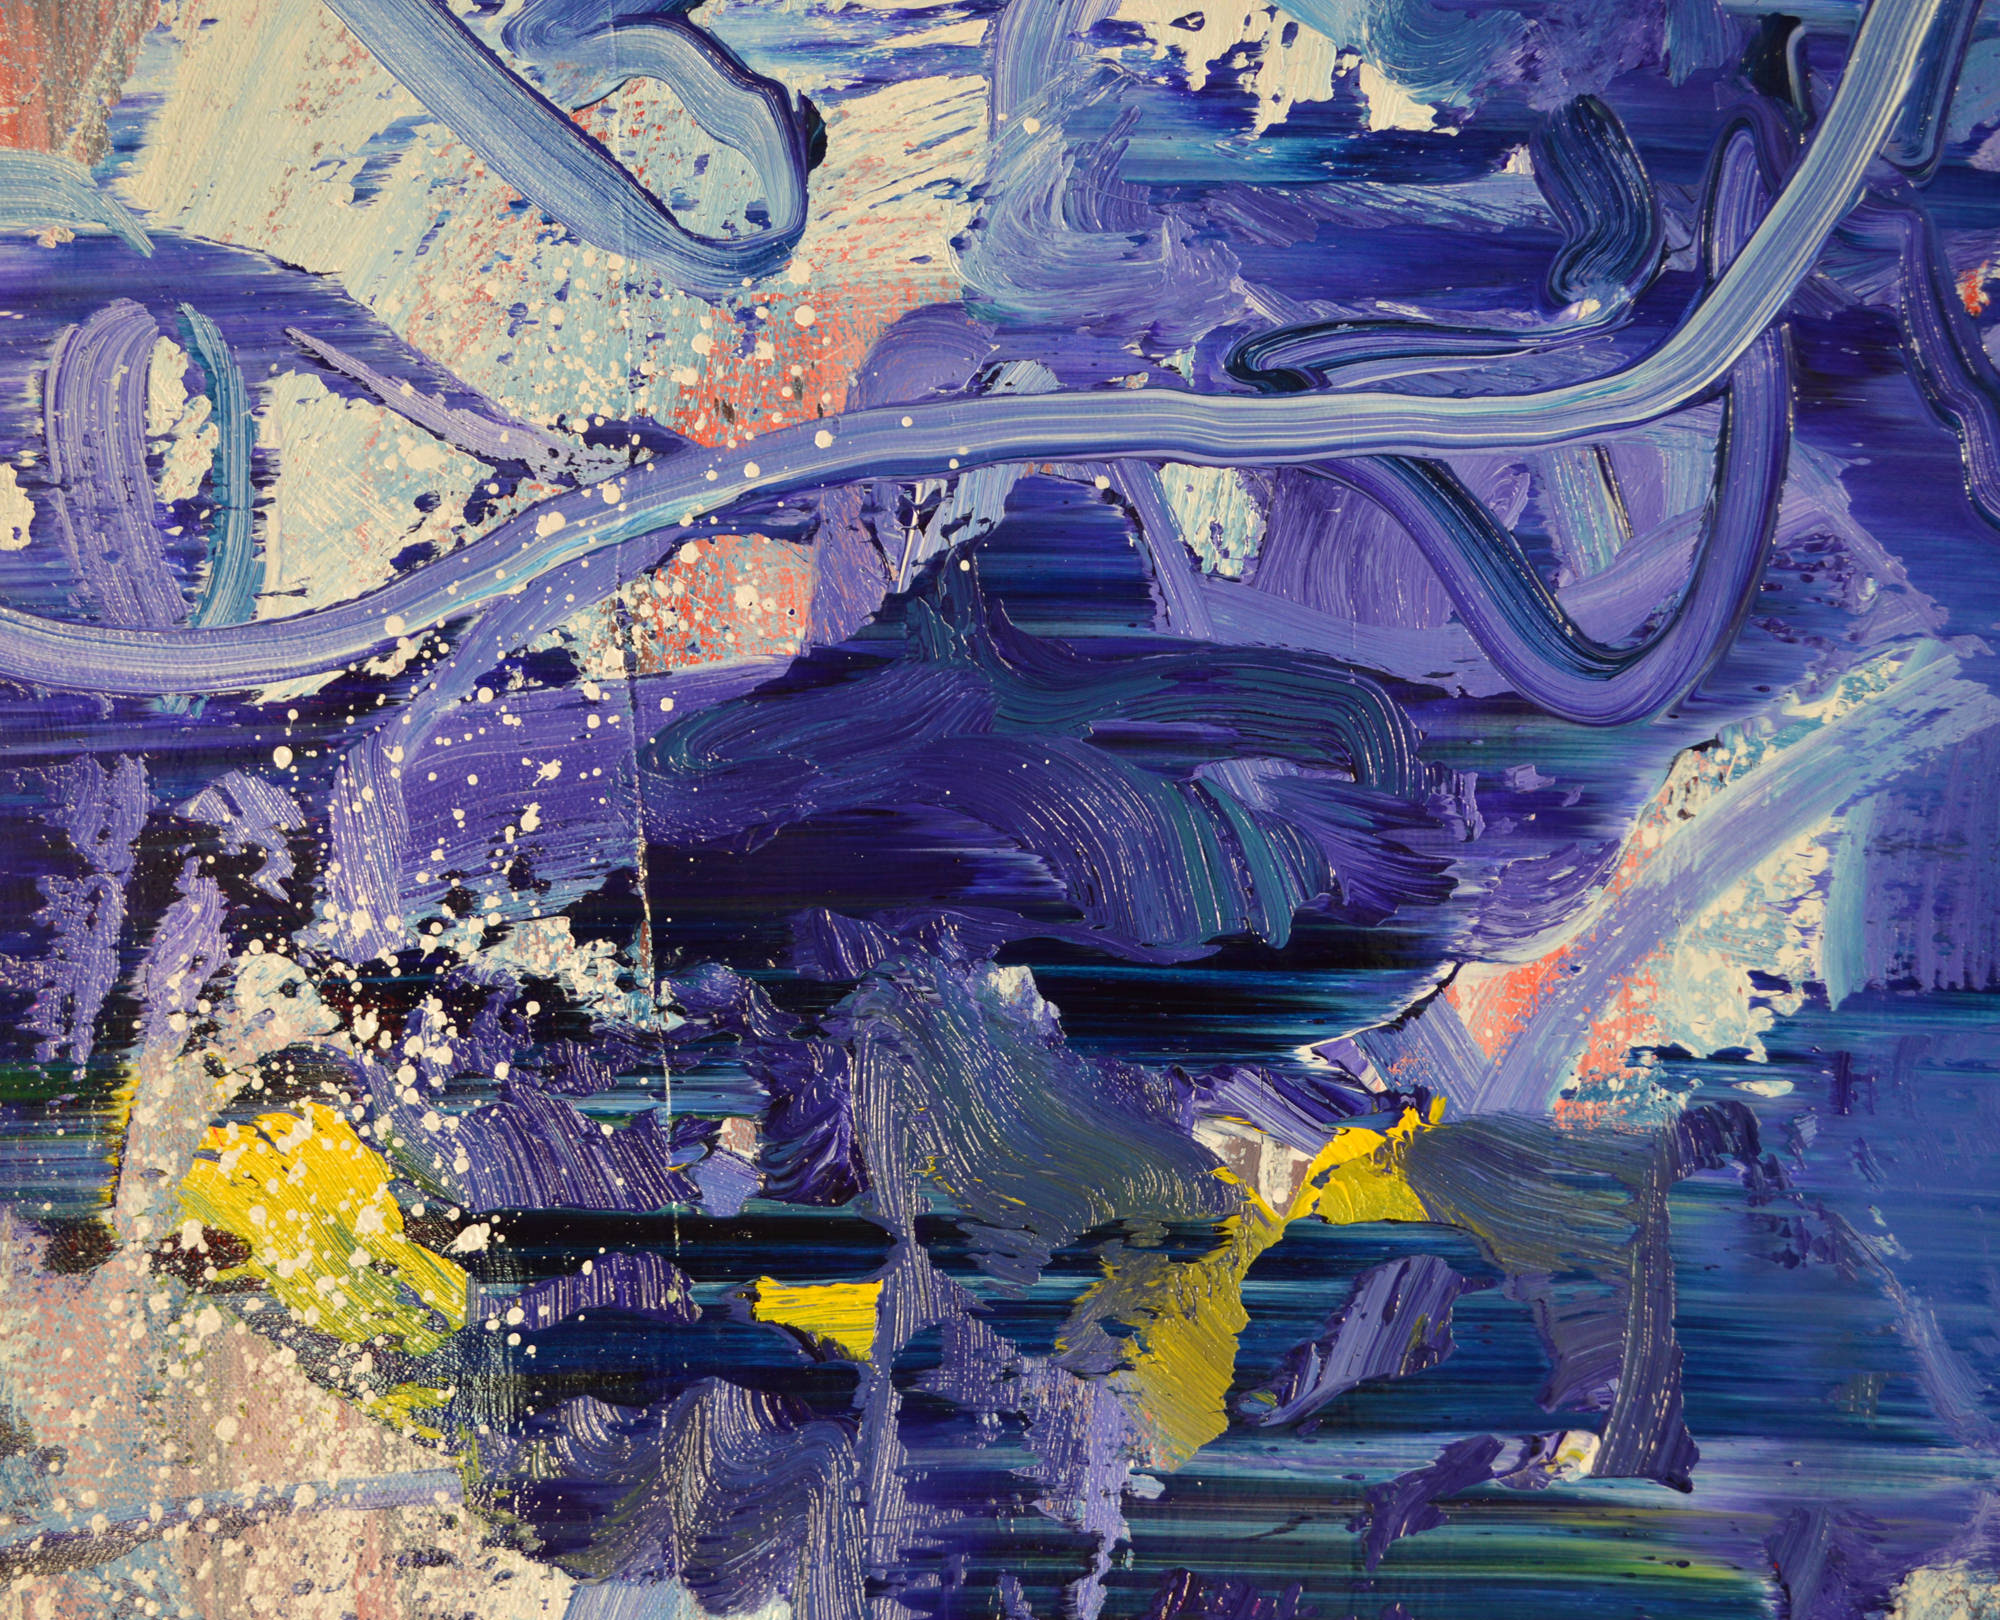 Robert West. Borderline Series. Abstract Painting No.75. Oil on Canvas. 200 x 200 cm. 2013-2014 -  Close Up 04.jpg